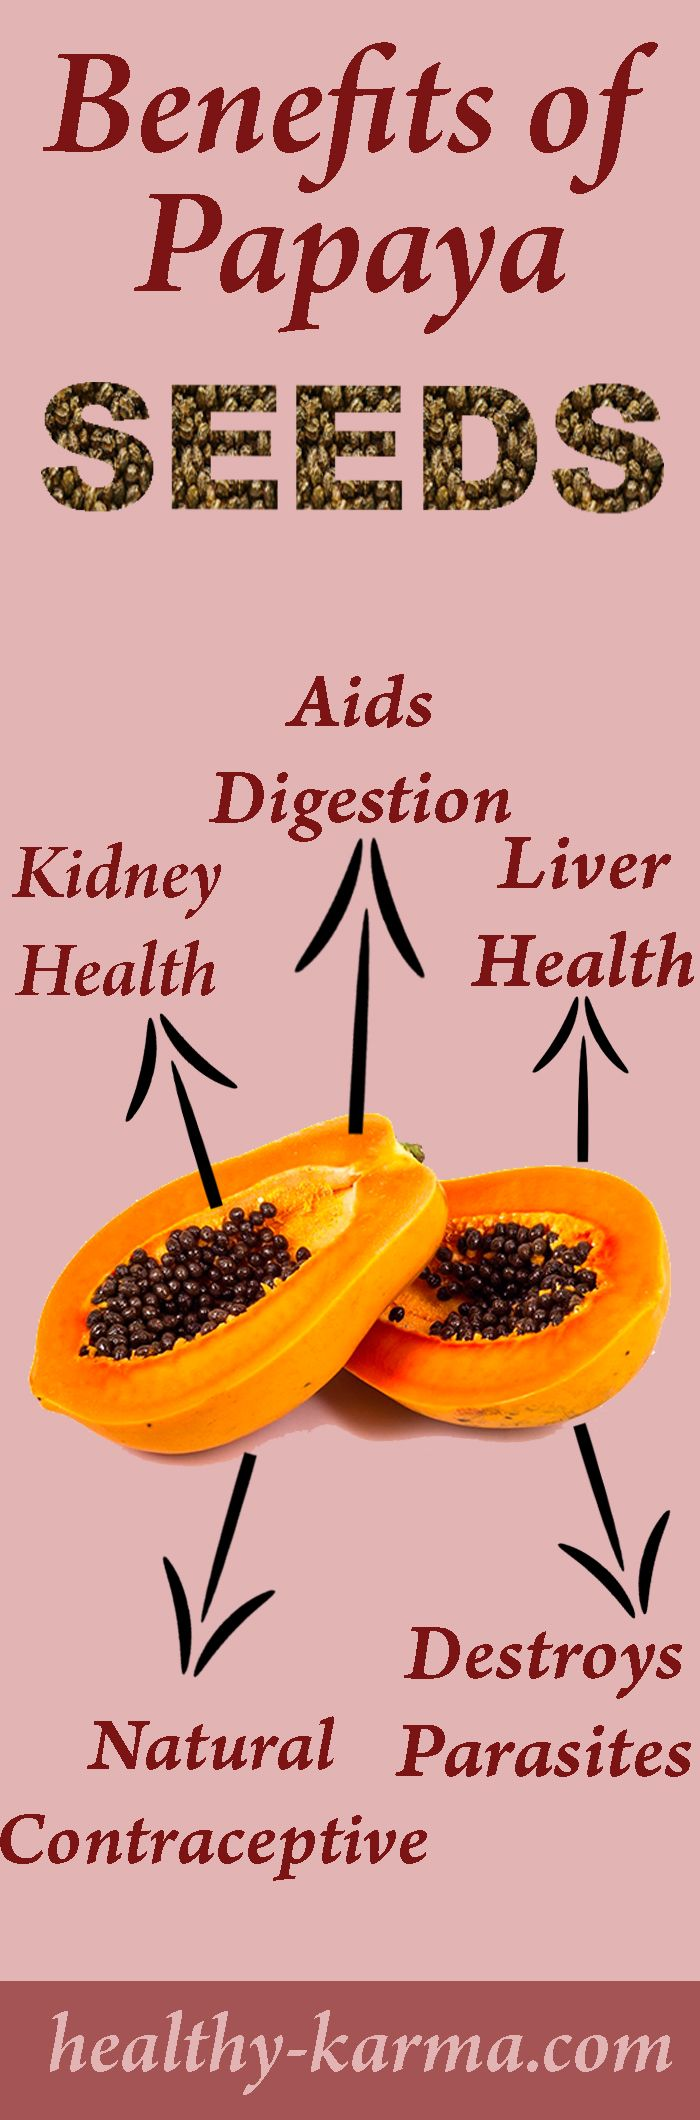 Most of the time when we eat Papaya fruit, we trash the Papaya Seeds. But little do we know how beneficial they are and how they can prevent and cure a plethora of ailments related to the liver, gut, intestinal worms and even diseases like Dengue.